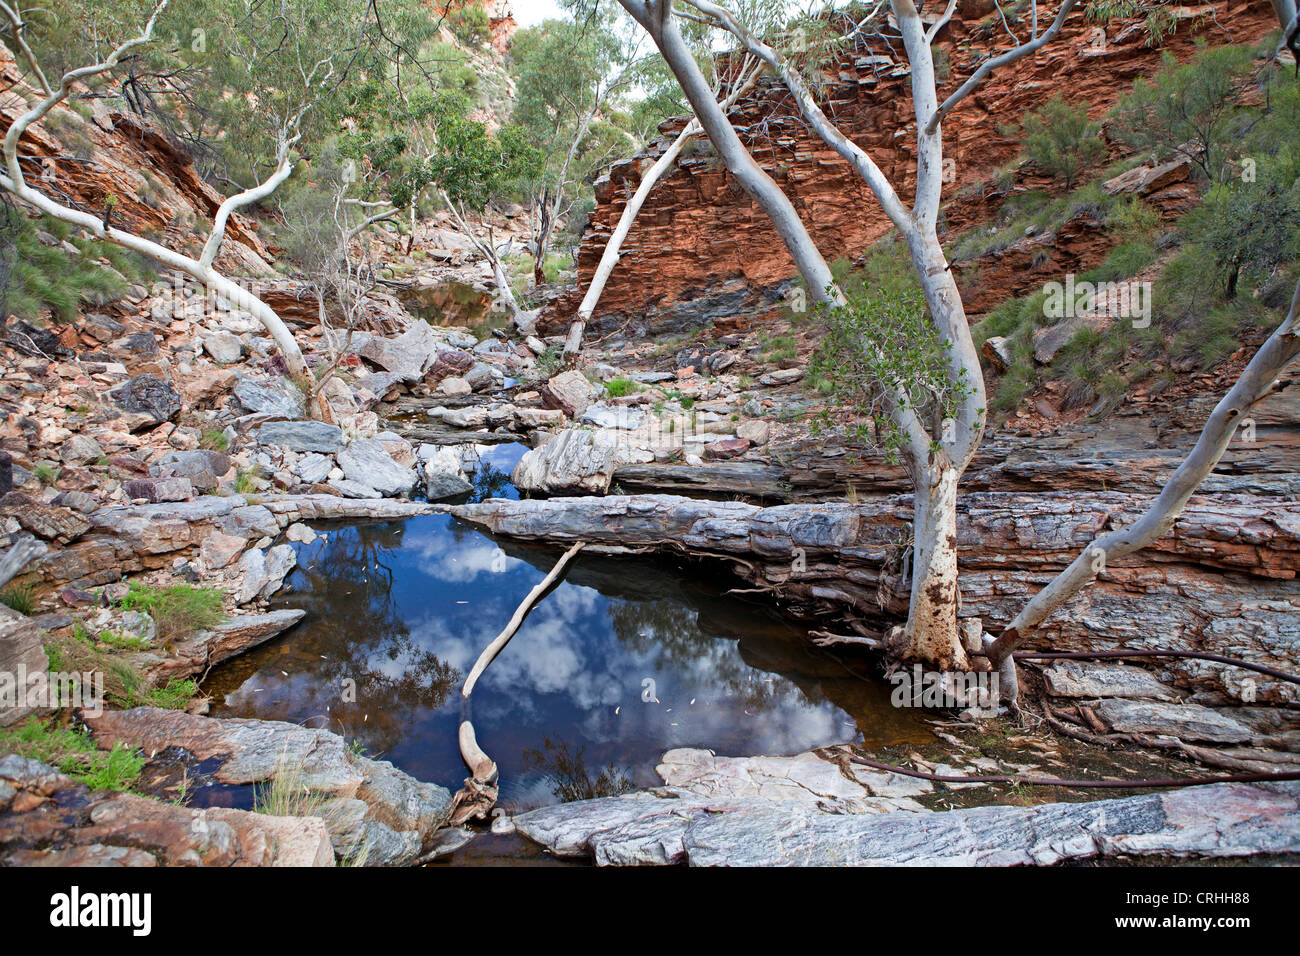 Gorge at Serpentine Chalet Dam in the West MacDonnell Ranges - Stock Image